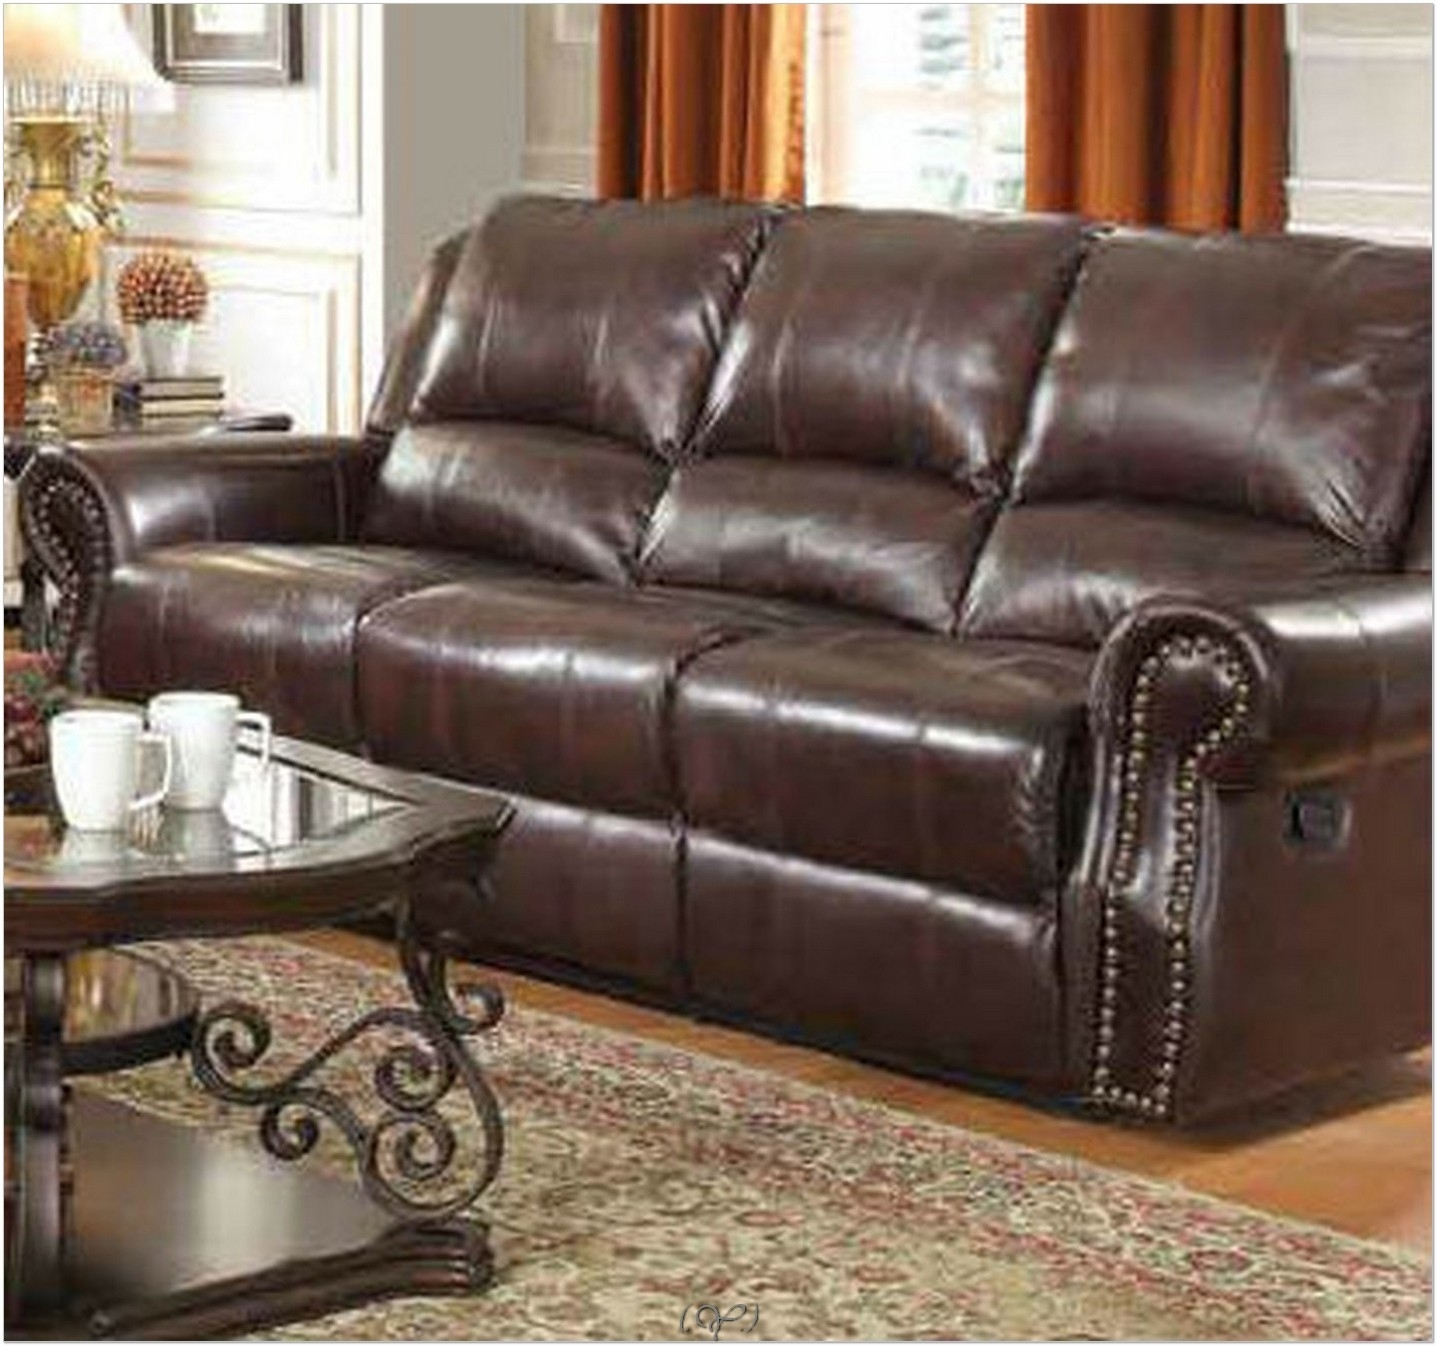 Ashley Leather Sofas Sofa Reviews Axiom Set Stock Photos Hd in 10X8 Sectional Sofas (Image 1 of 10)